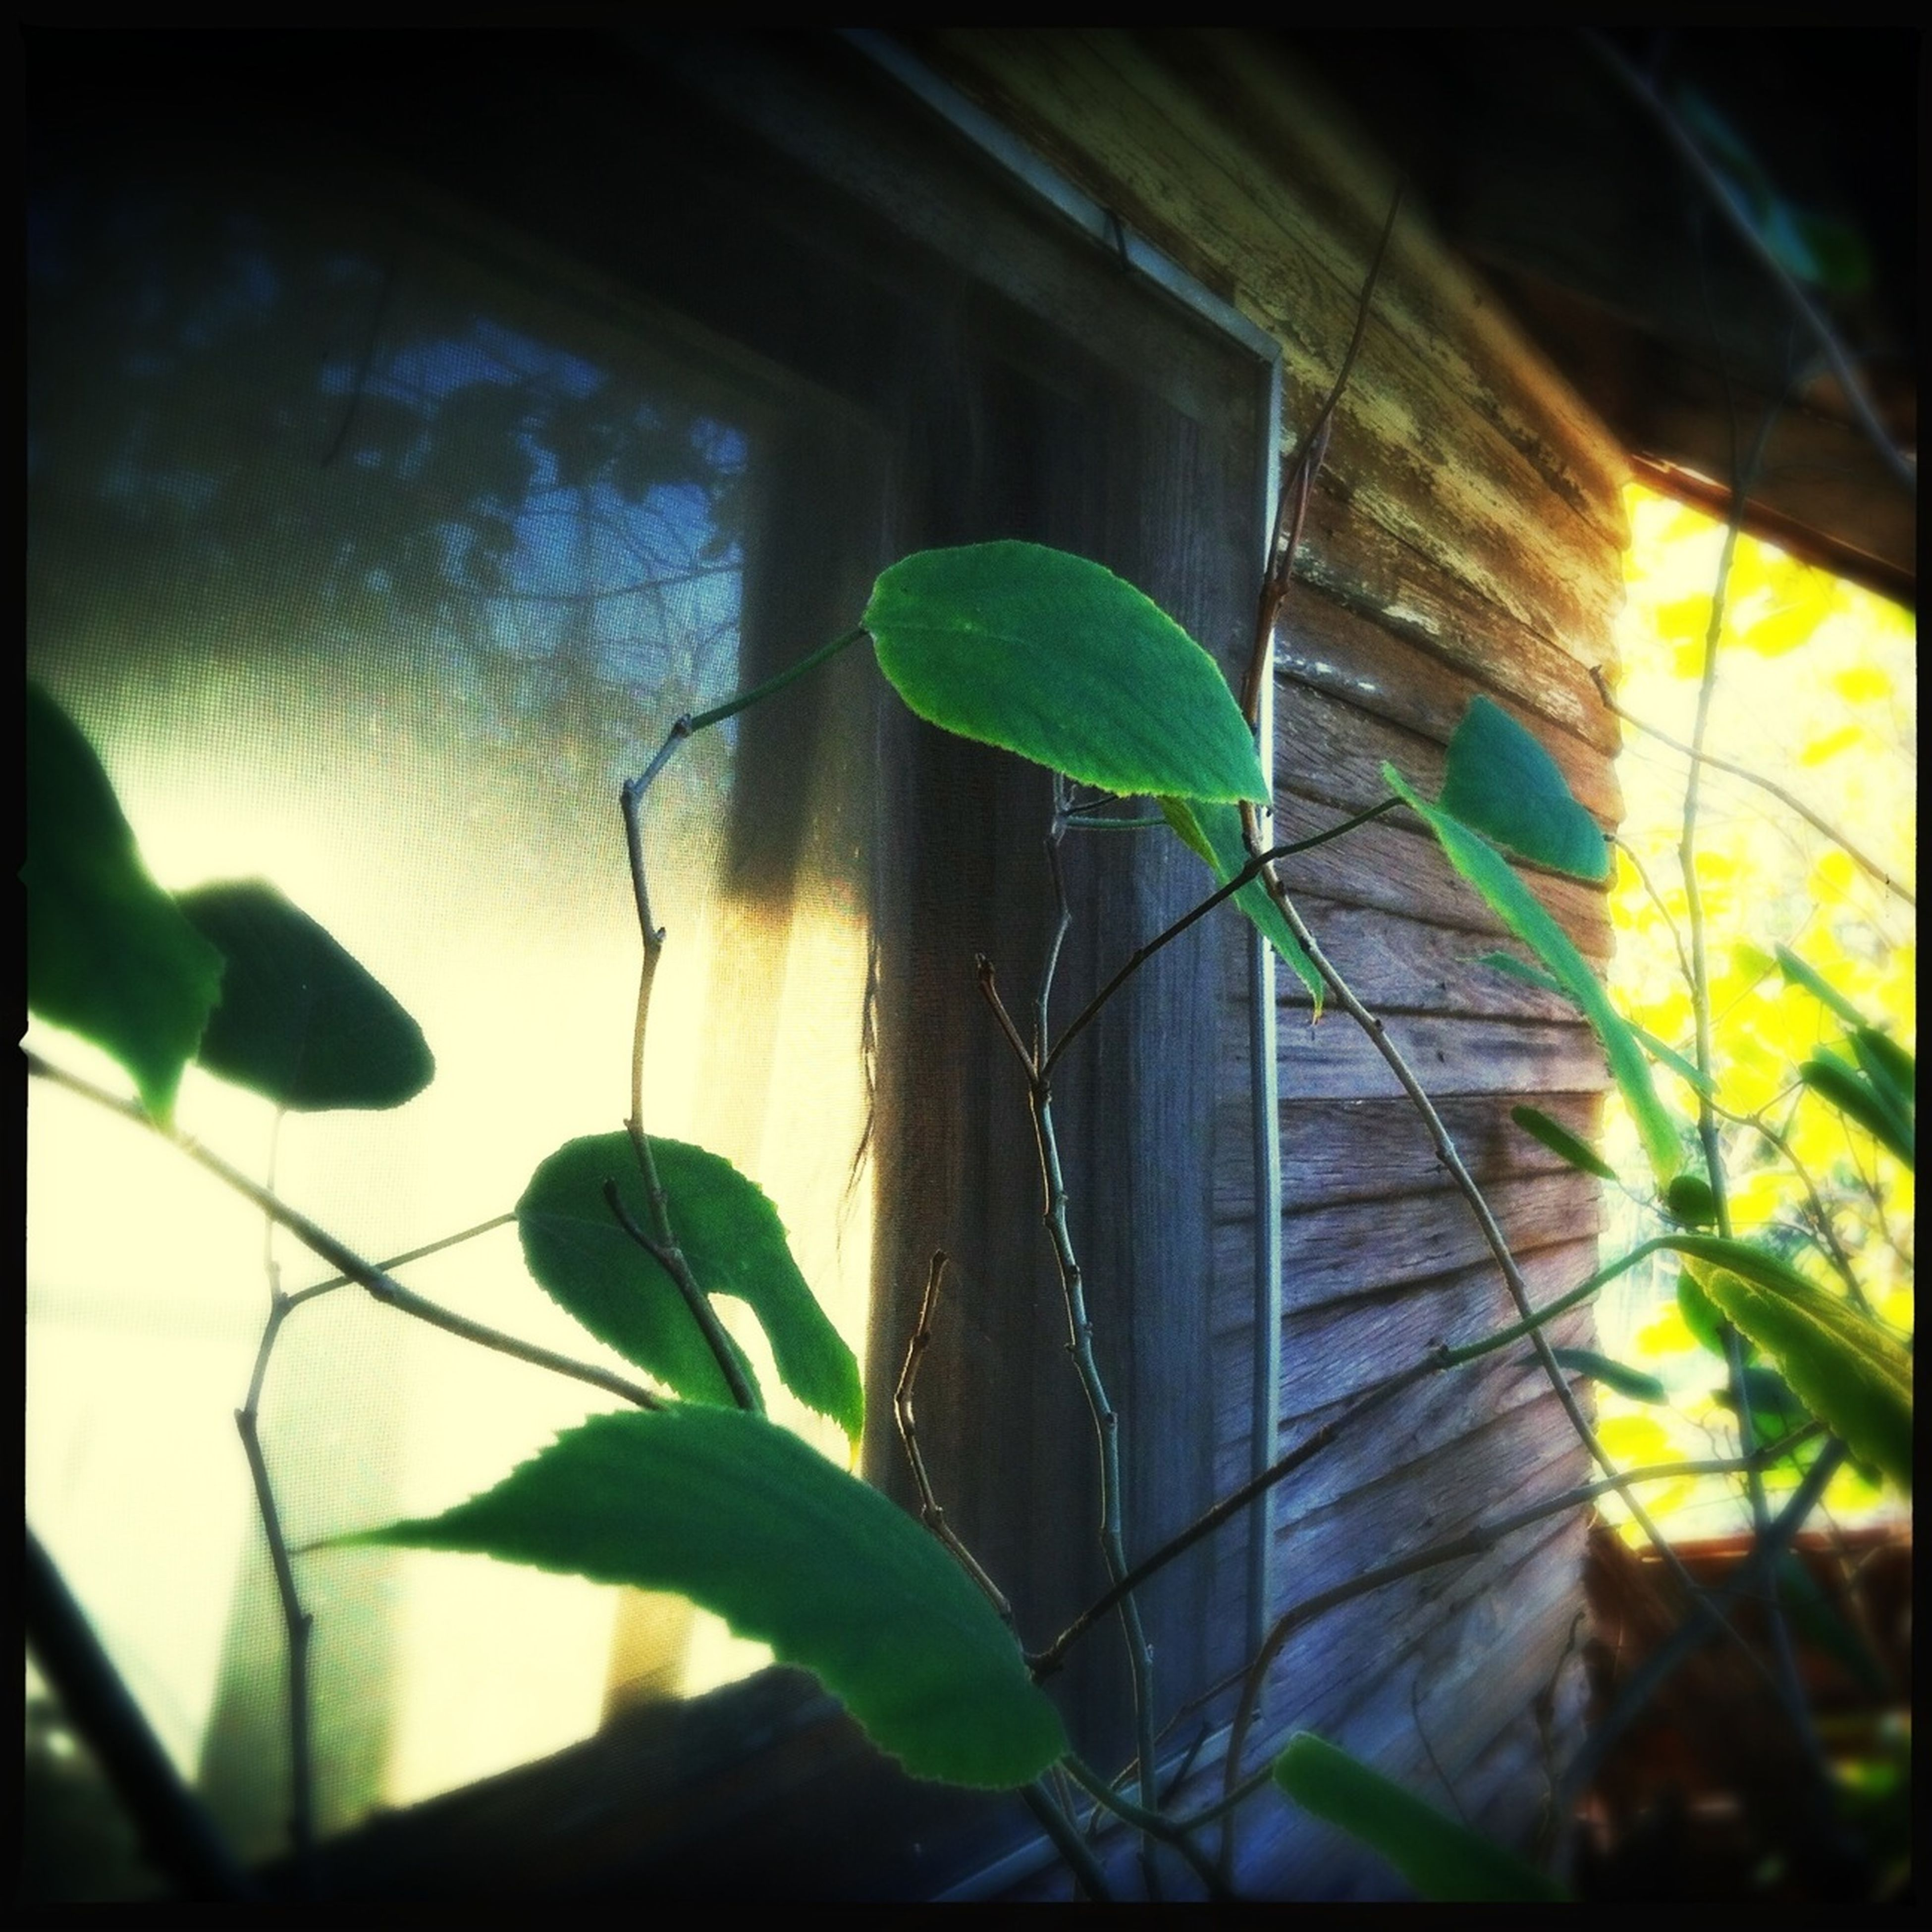 leaf, plant, growth, built structure, architecture, close-up, window, building exterior, auto post production filter, nature, low angle view, focus on foreground, sunlight, green color, indoors, day, no people, glass - material, wall - building feature